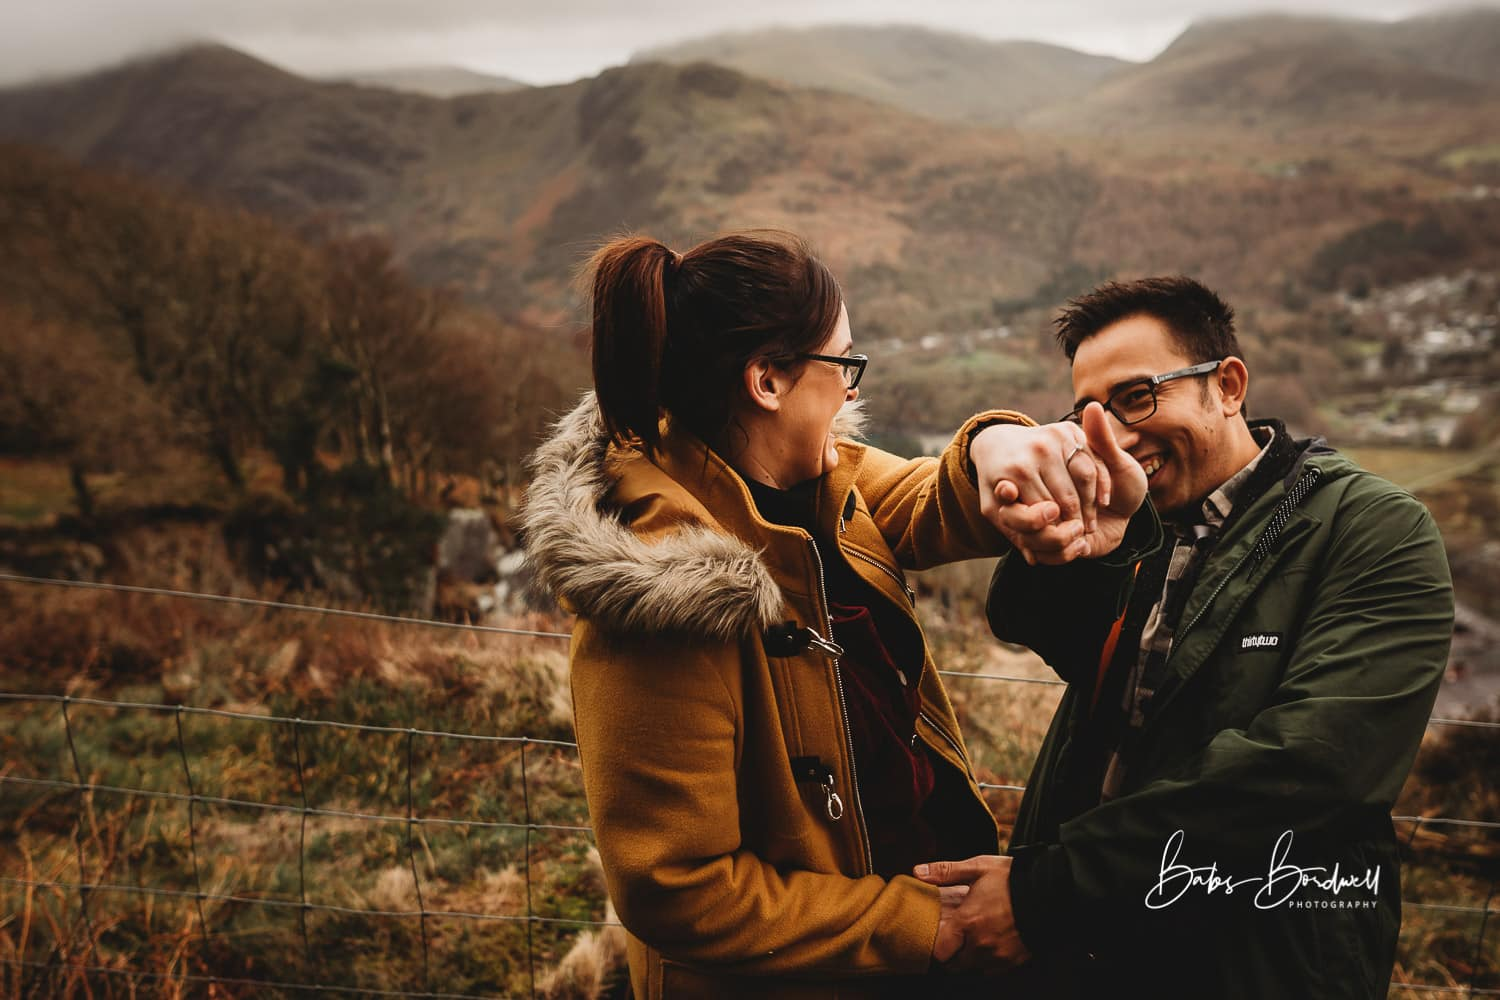 engaged couple laughing showing off her engagement ring against a mountain backdrop